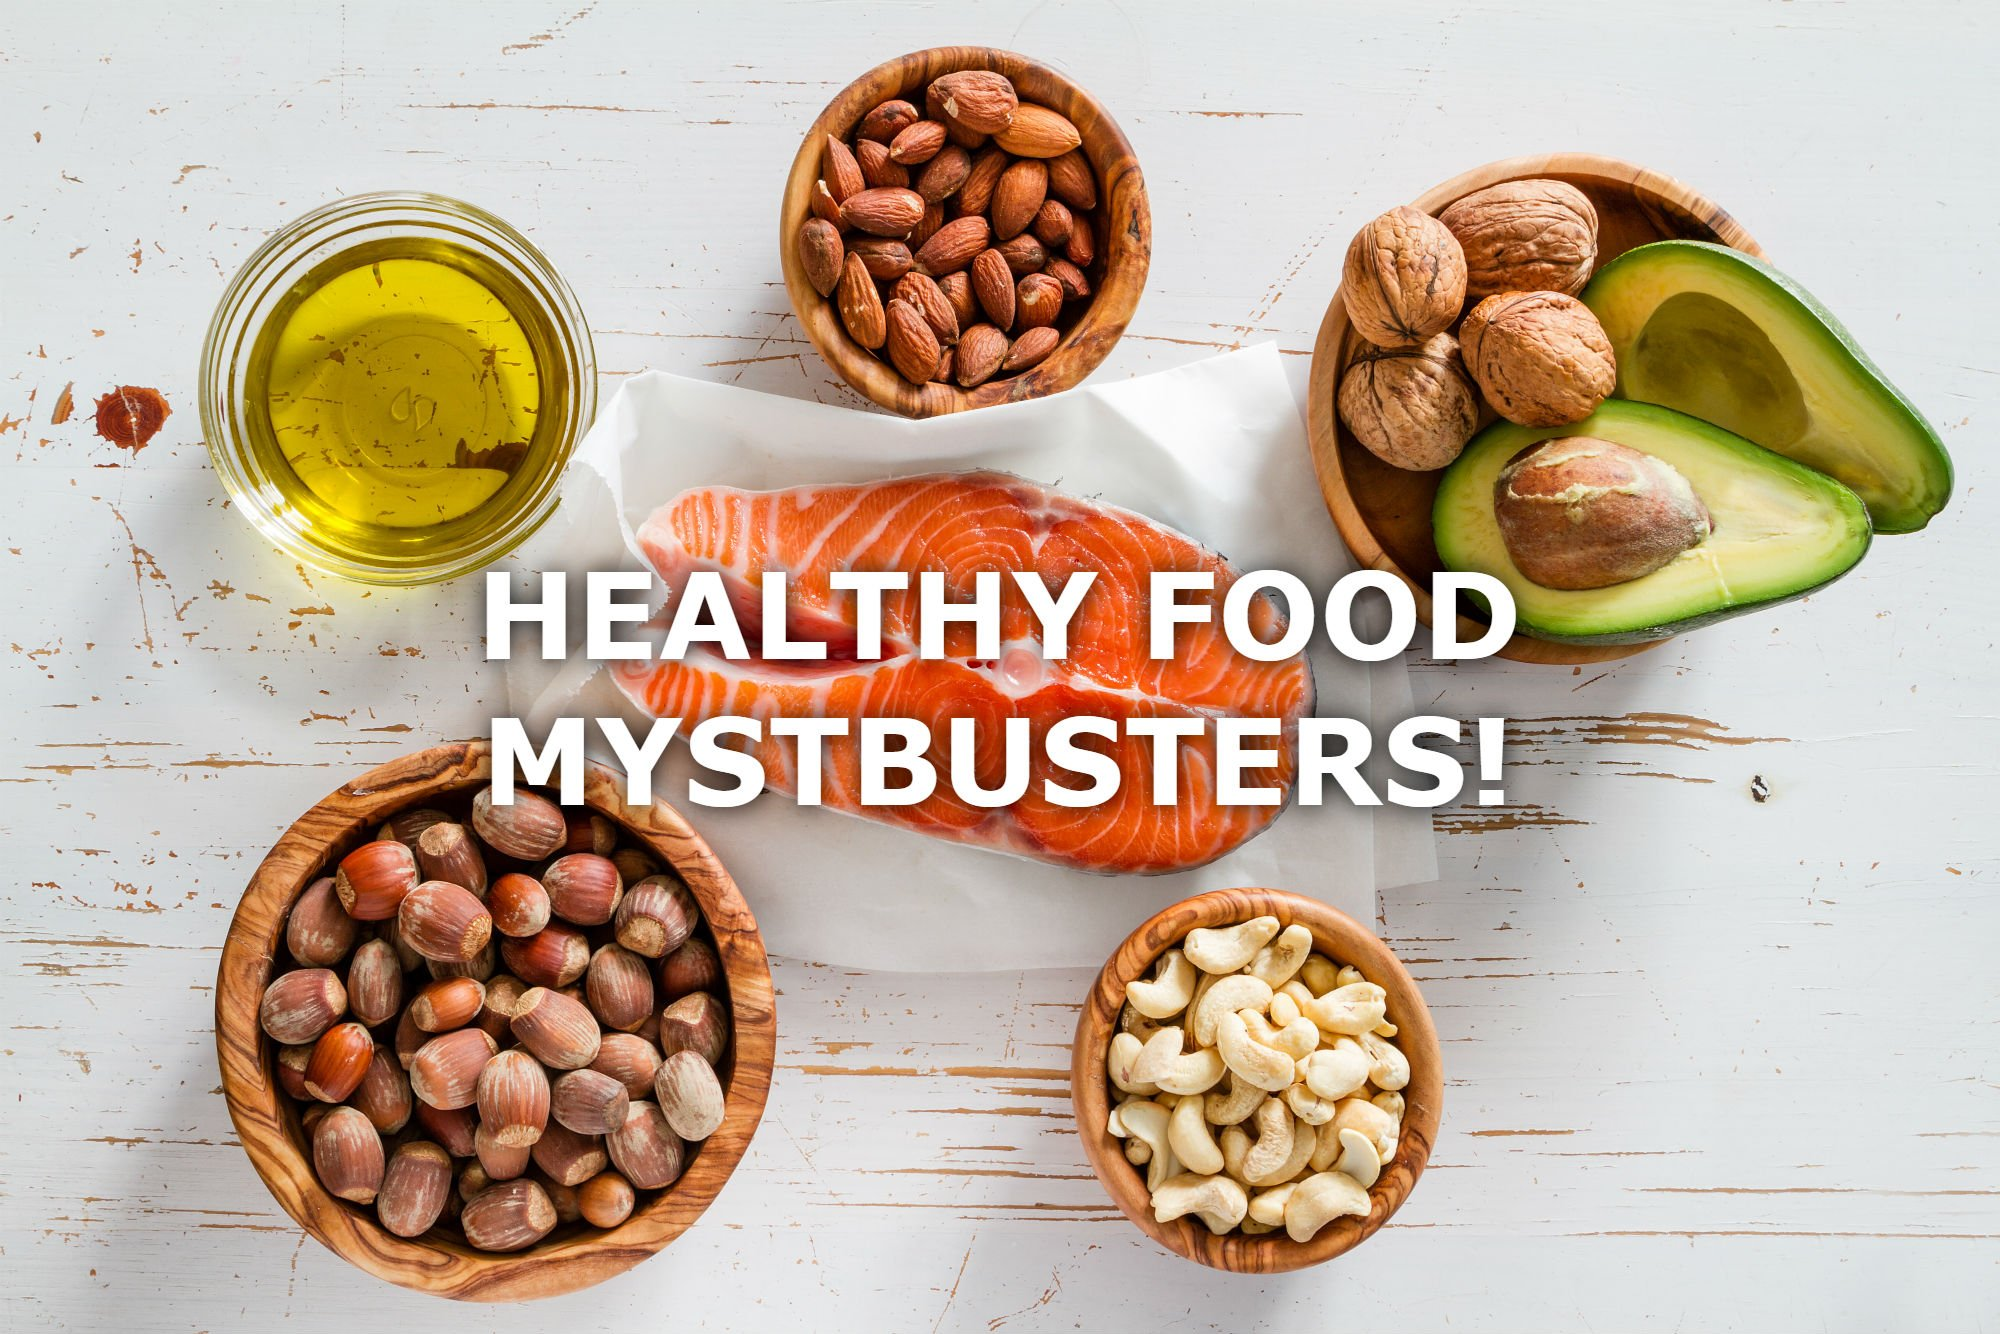 FIVE HEALTHY FOOD MYTHBUSTERS